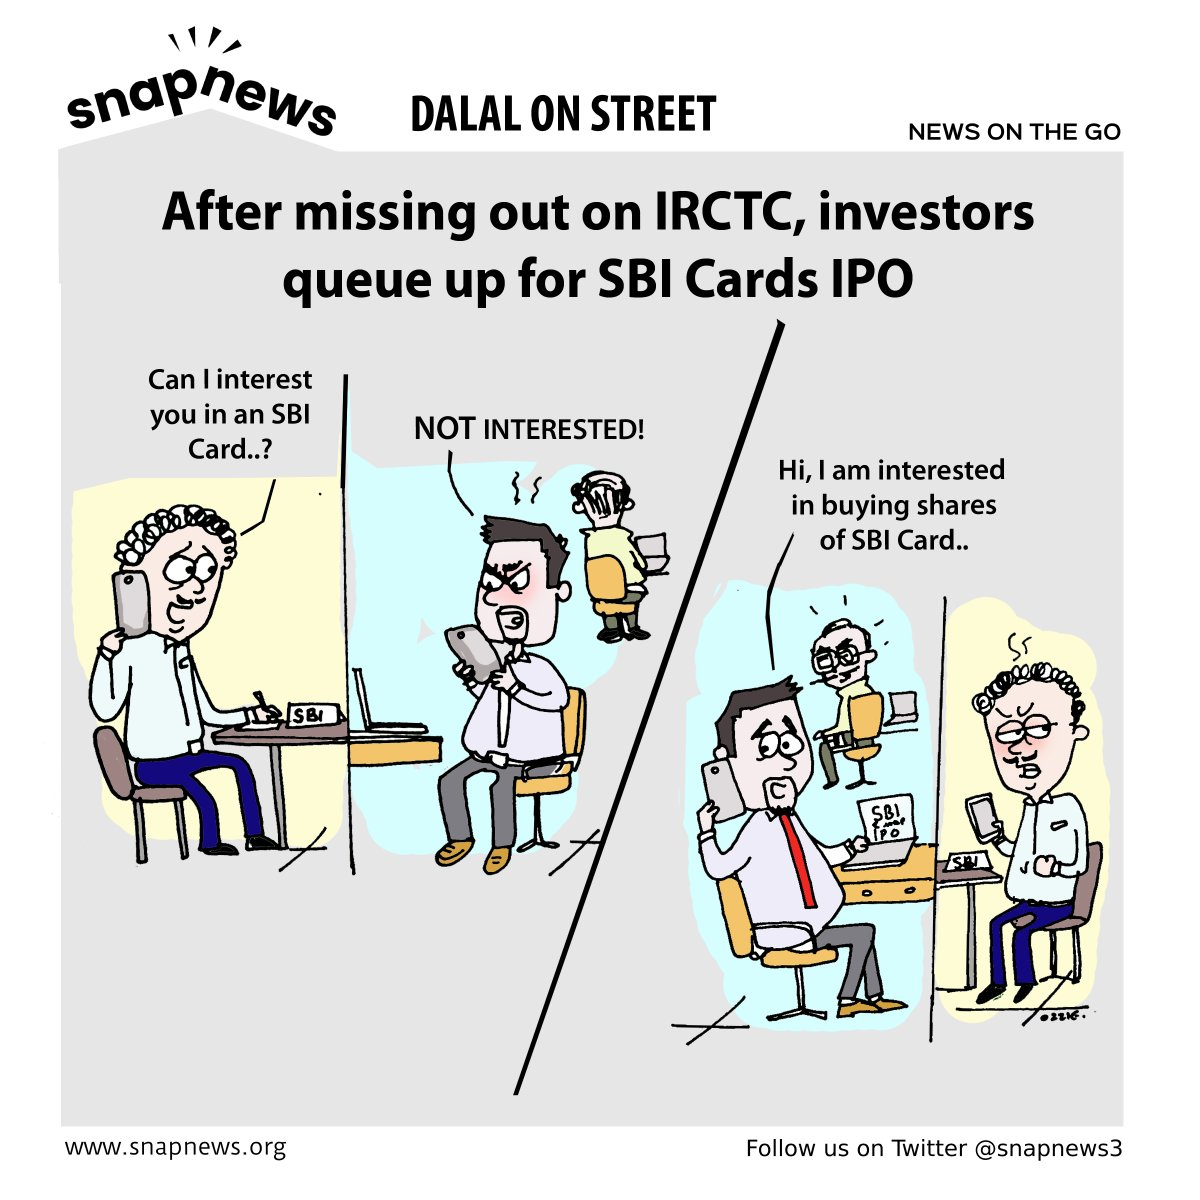 After missing out on IRCTC, investors queue up for SBI Cards IPO #SBI #SBICards #IPO #IRCTC @SBICard_Connect